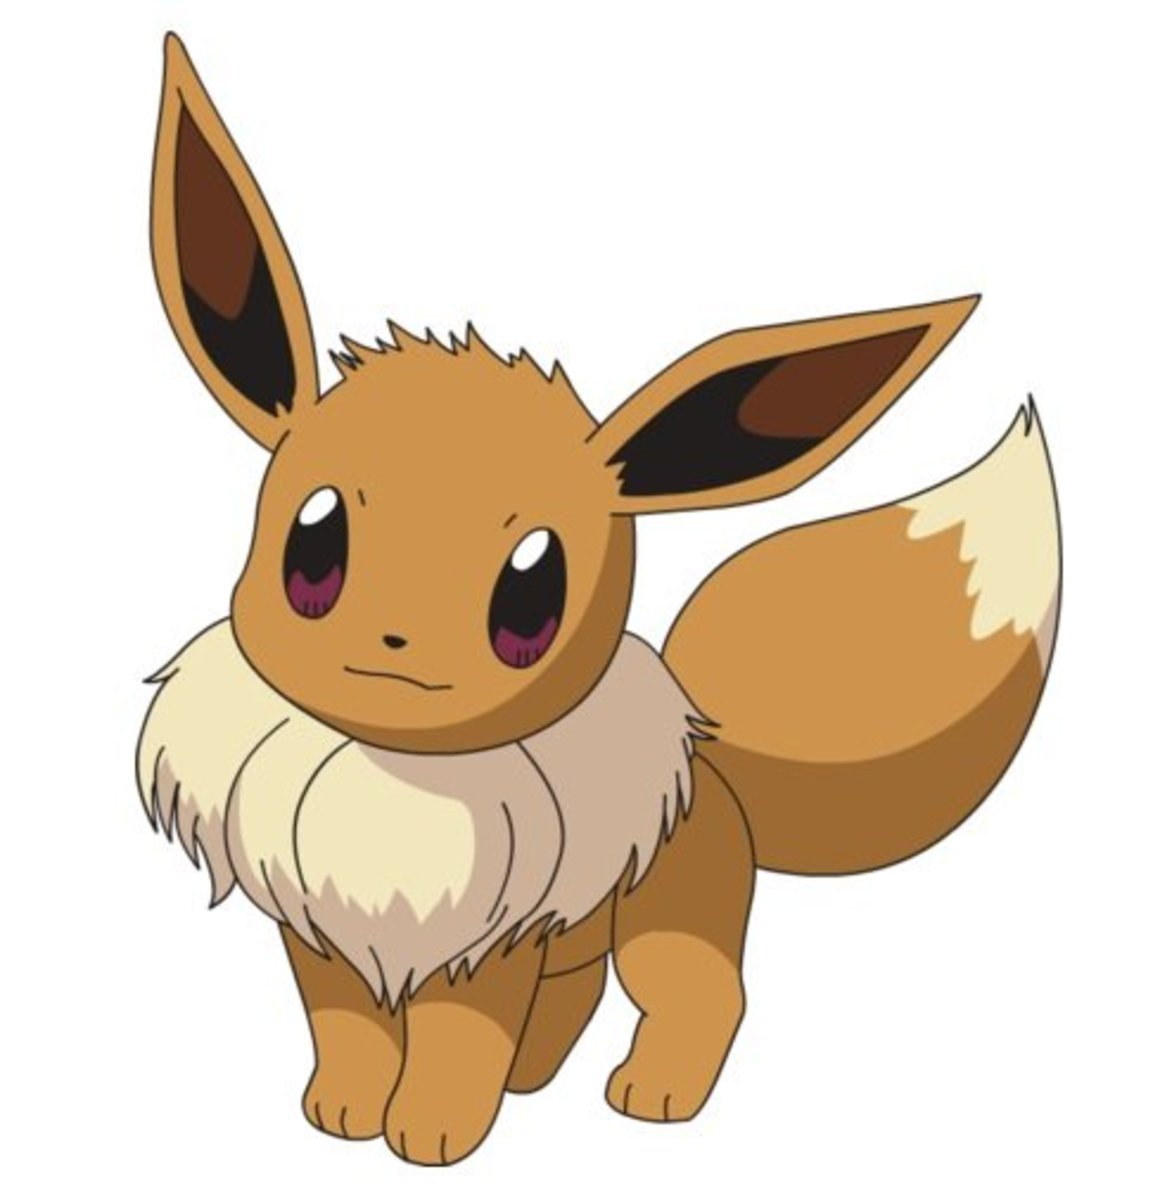 Eevee is a normal-type pokémon that can evolve into many different types of pokémon.